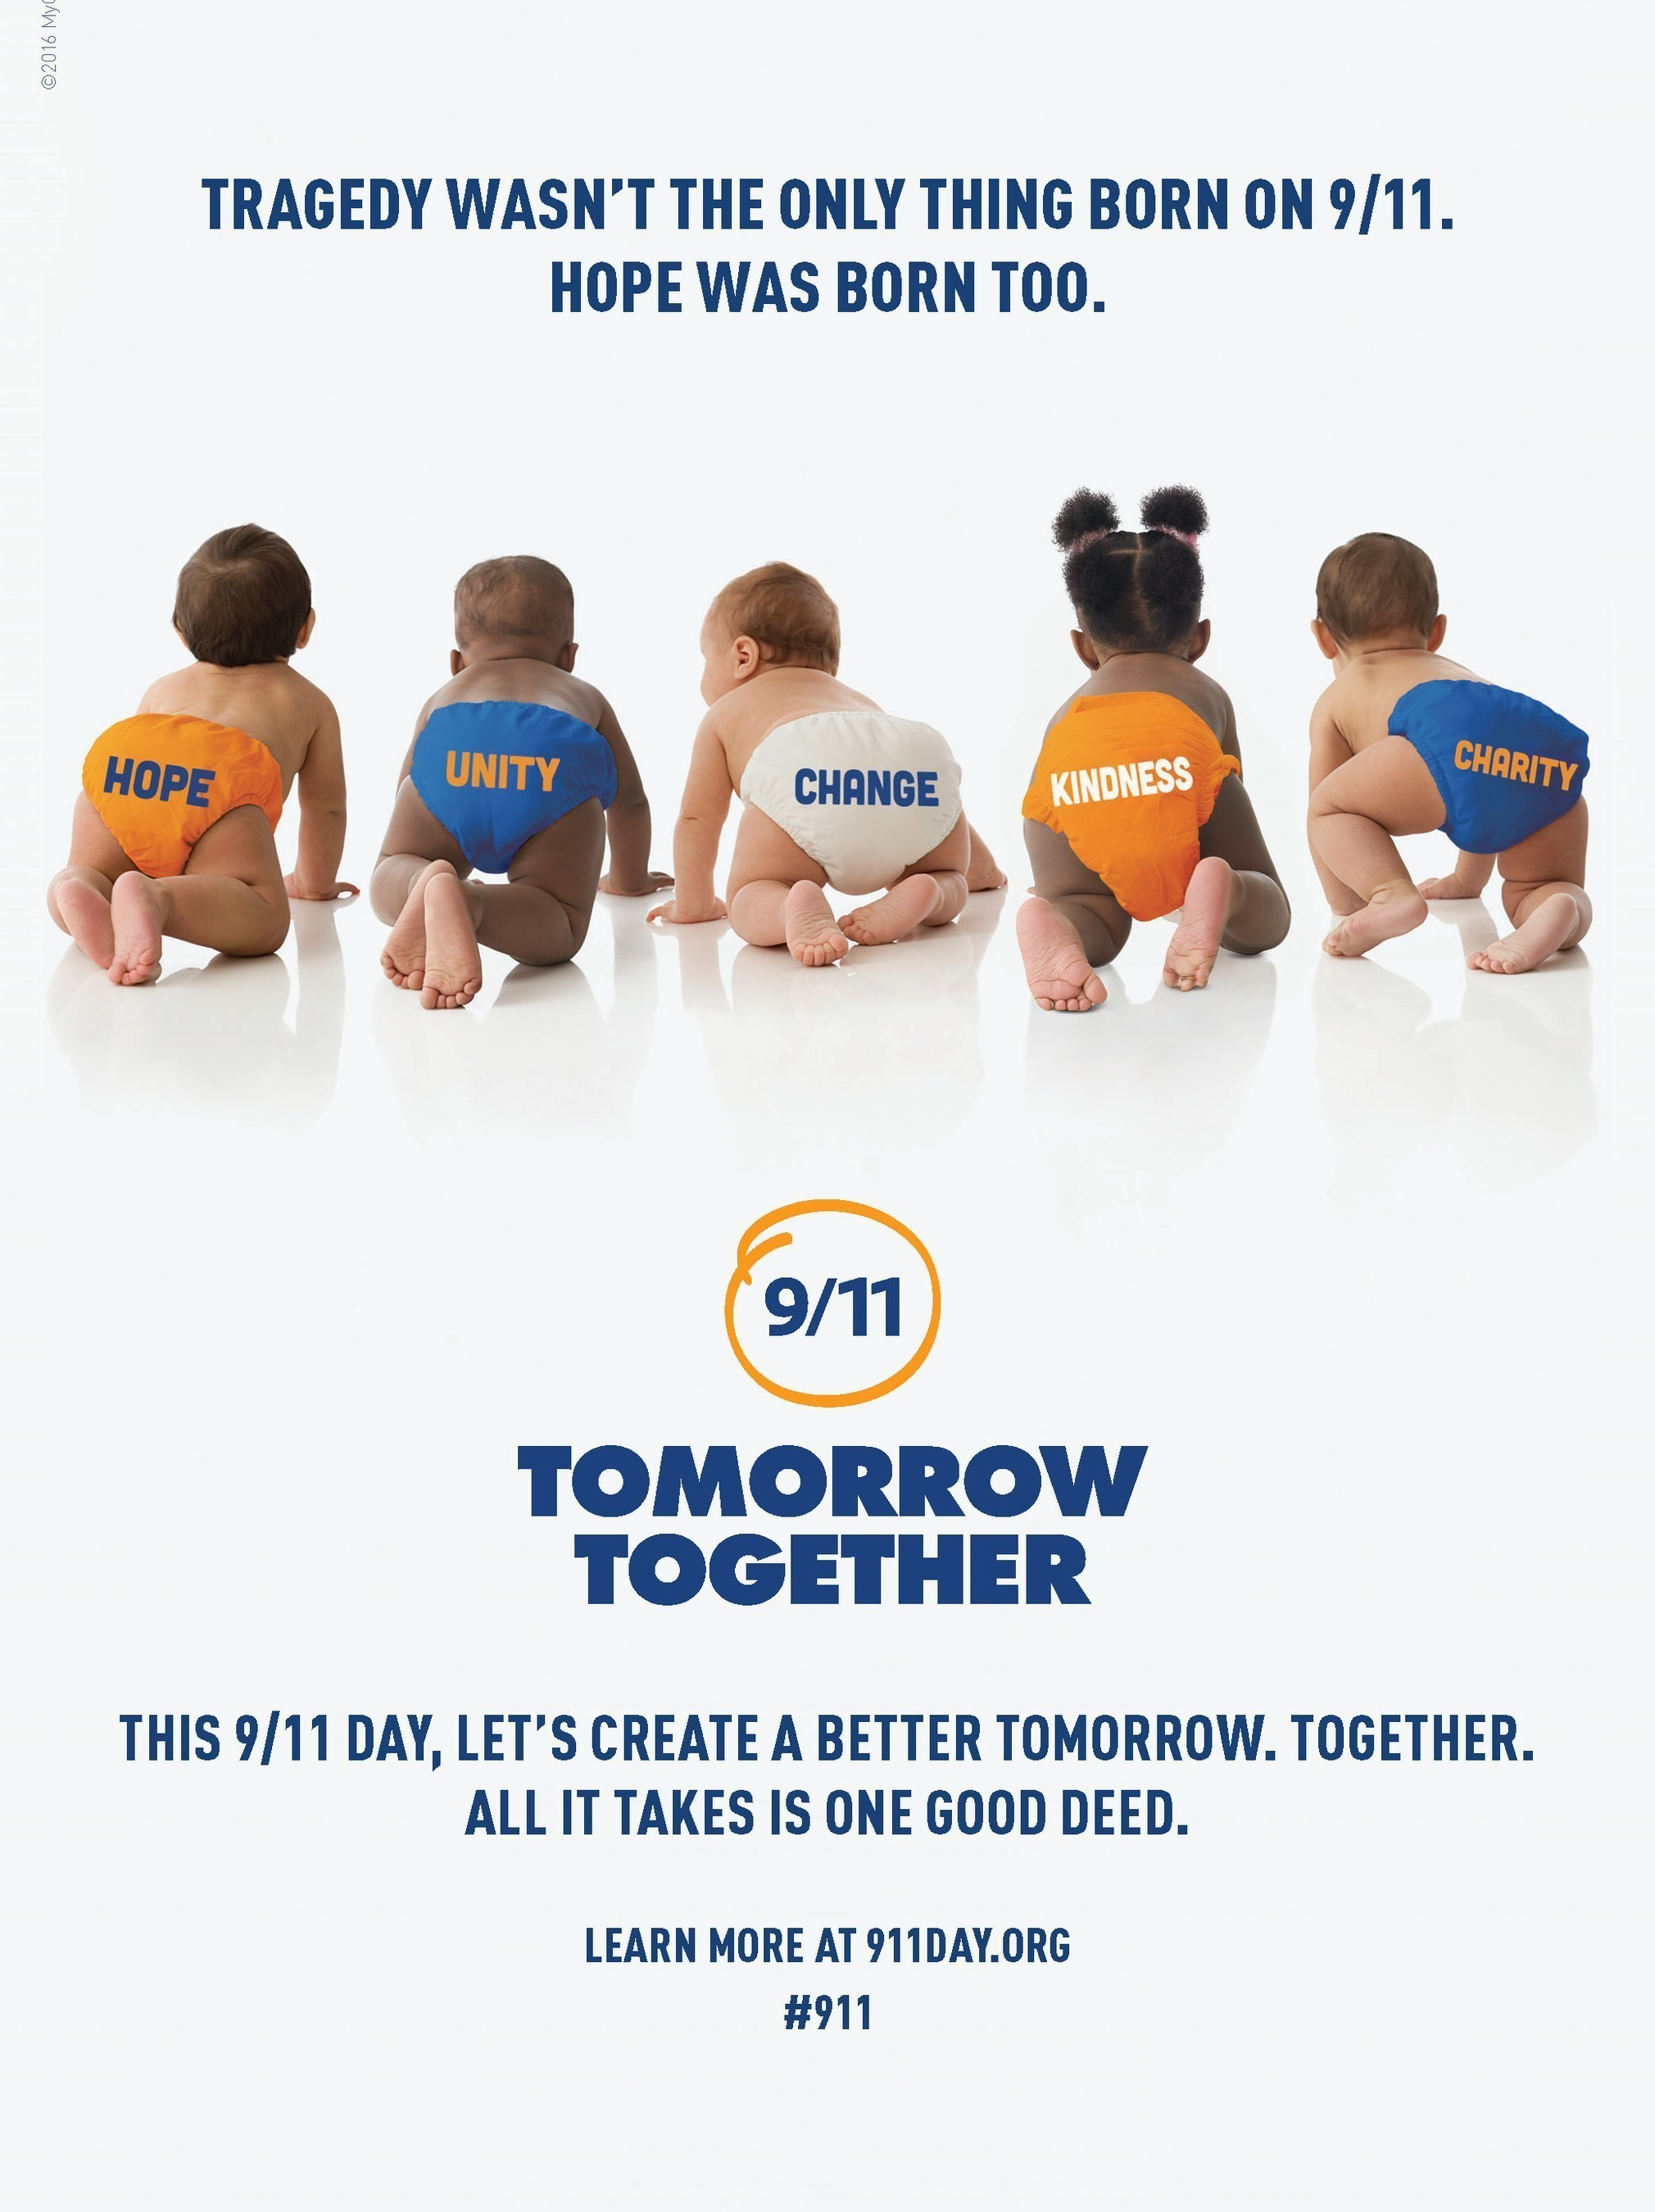 New PSA campaign promotes unity for 15th Anniversary of 9/11.